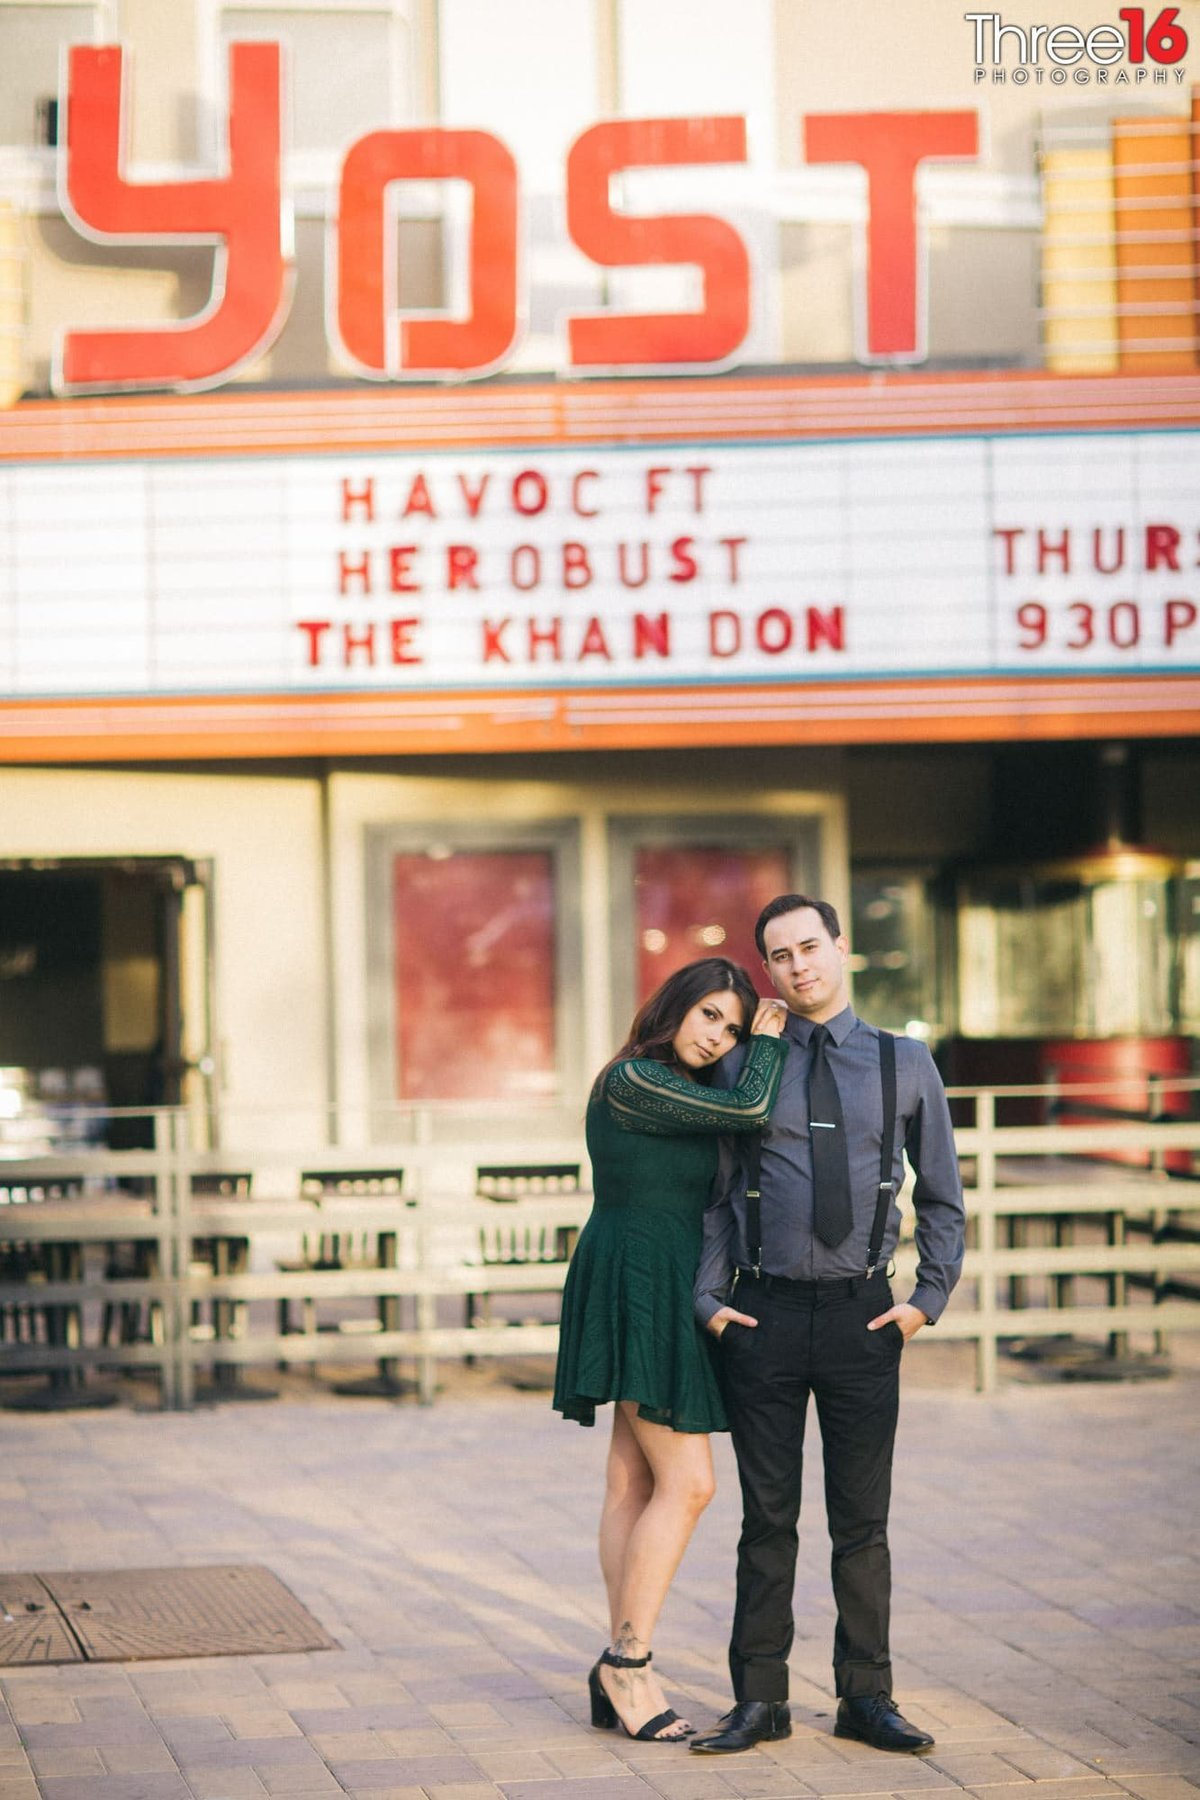 Yost Theater Engagement Photos Santa Ana Orange County Wedding Professional Photographer Urban Unique